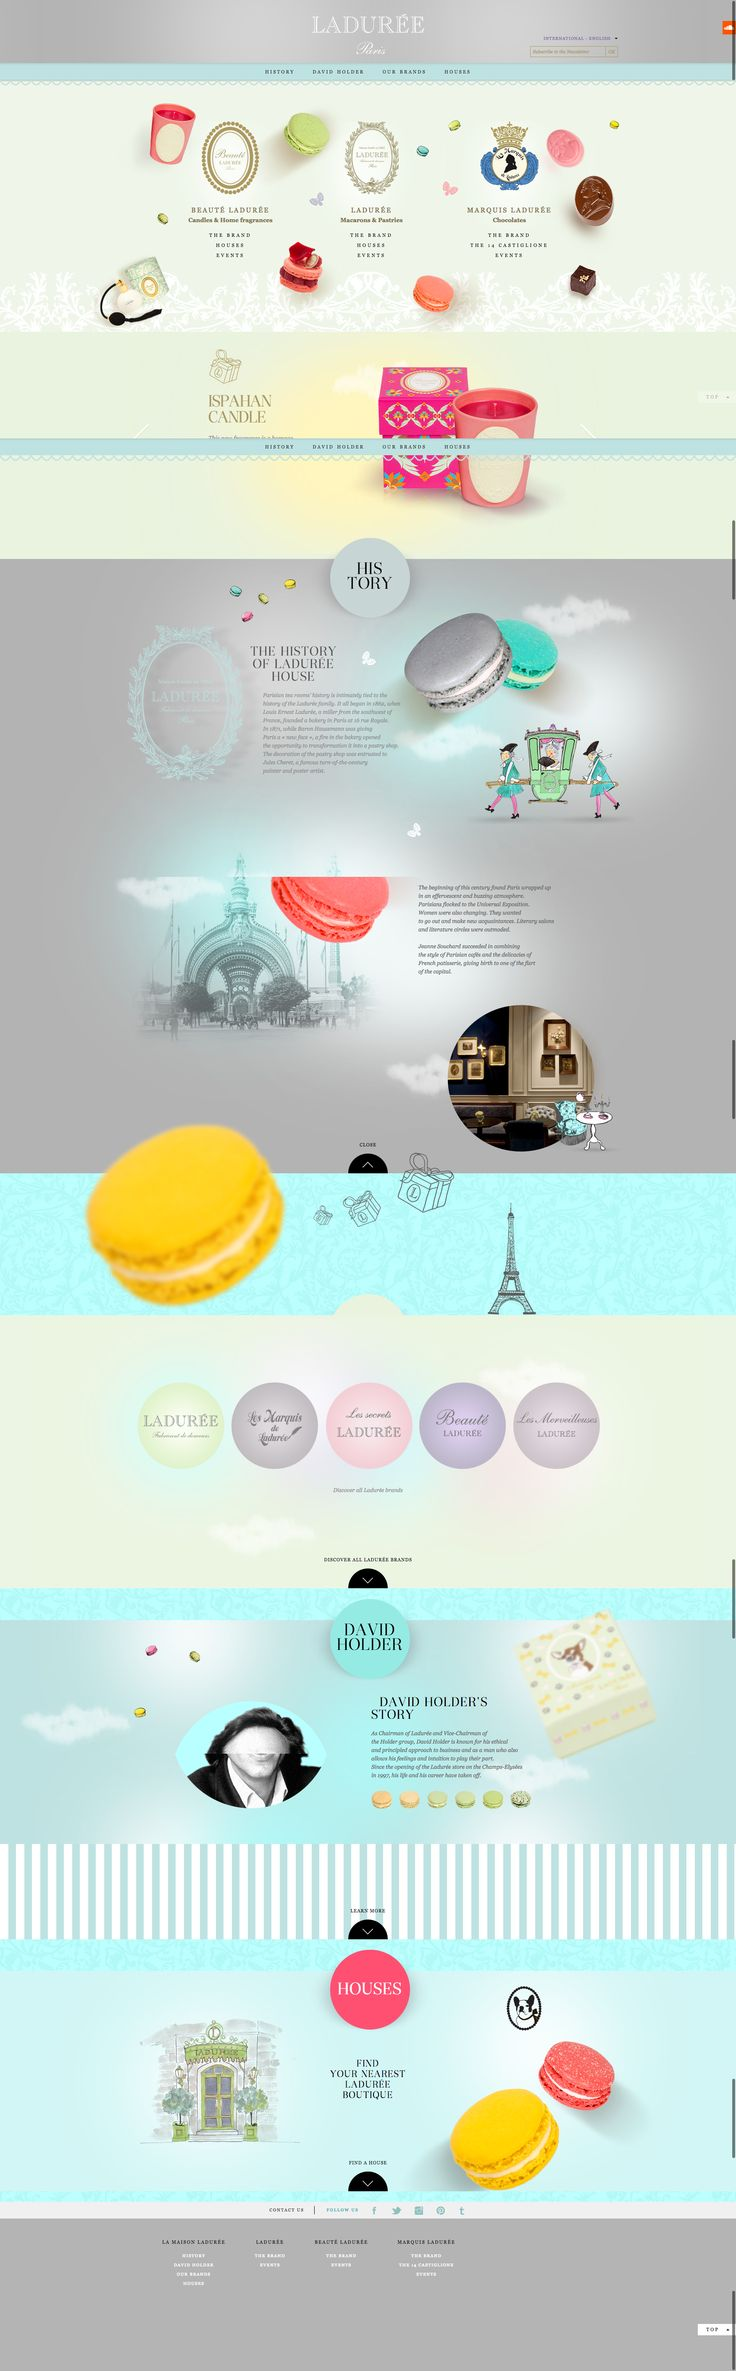 https://www.laduree.com/en_int/#!brand/history